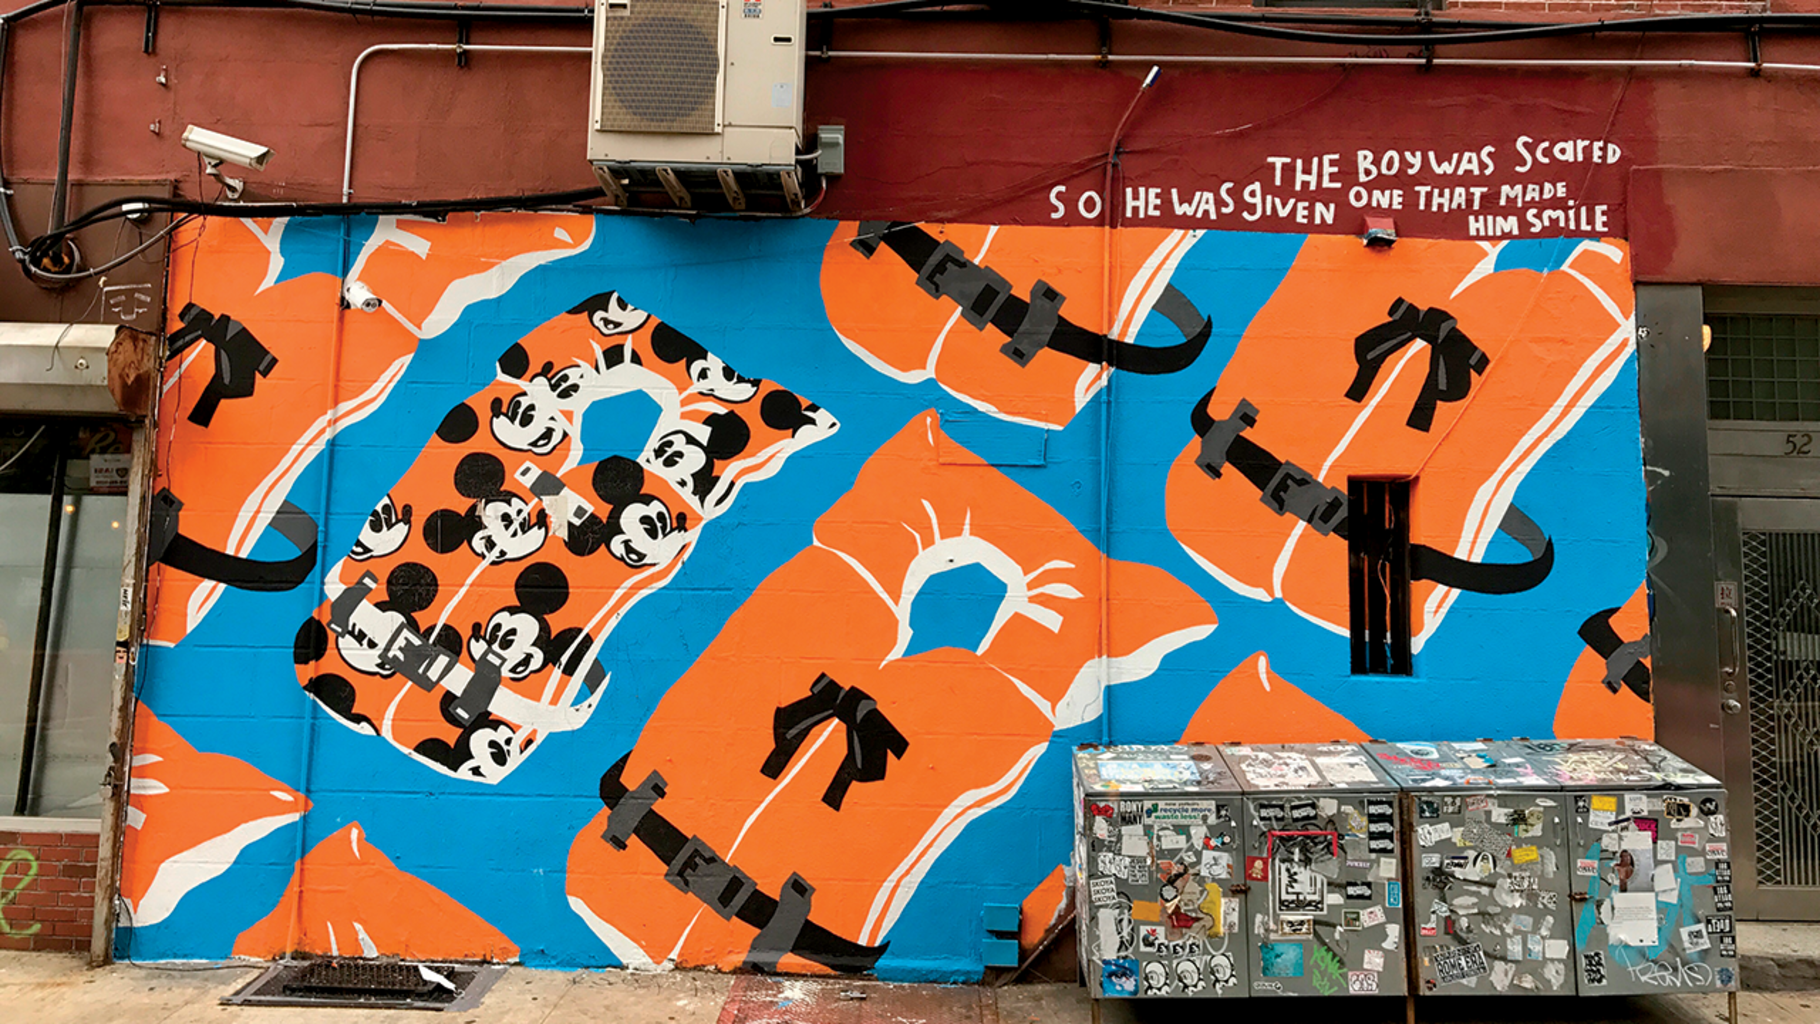 Sink or Swim by artist Adam Lucas was originally done in paint on bleached denim. He was later asked to reproduce the painting as a mural in New York City, as shown here. The work was inspired by an incident in May 2017 off the coast of Libya, when a boat overloaded with some 200 migrants capsized while attempting to reach Europe. Though many were rescued, several dozen died -- reportedly, most of them were very young children. The piece is in response to one specific disaster, but it can be applied to any number of refugee crises. The artist asks us to imagine being part of a family living in an environment so dire that the best hope lies across the uncertain sea. The Mickey Mouse life vest, representing joy and innocence, references an actual child making the journey as well as blameless youth being forced into a situation of such severity. Loss of childhood at best, loss of life at worst.